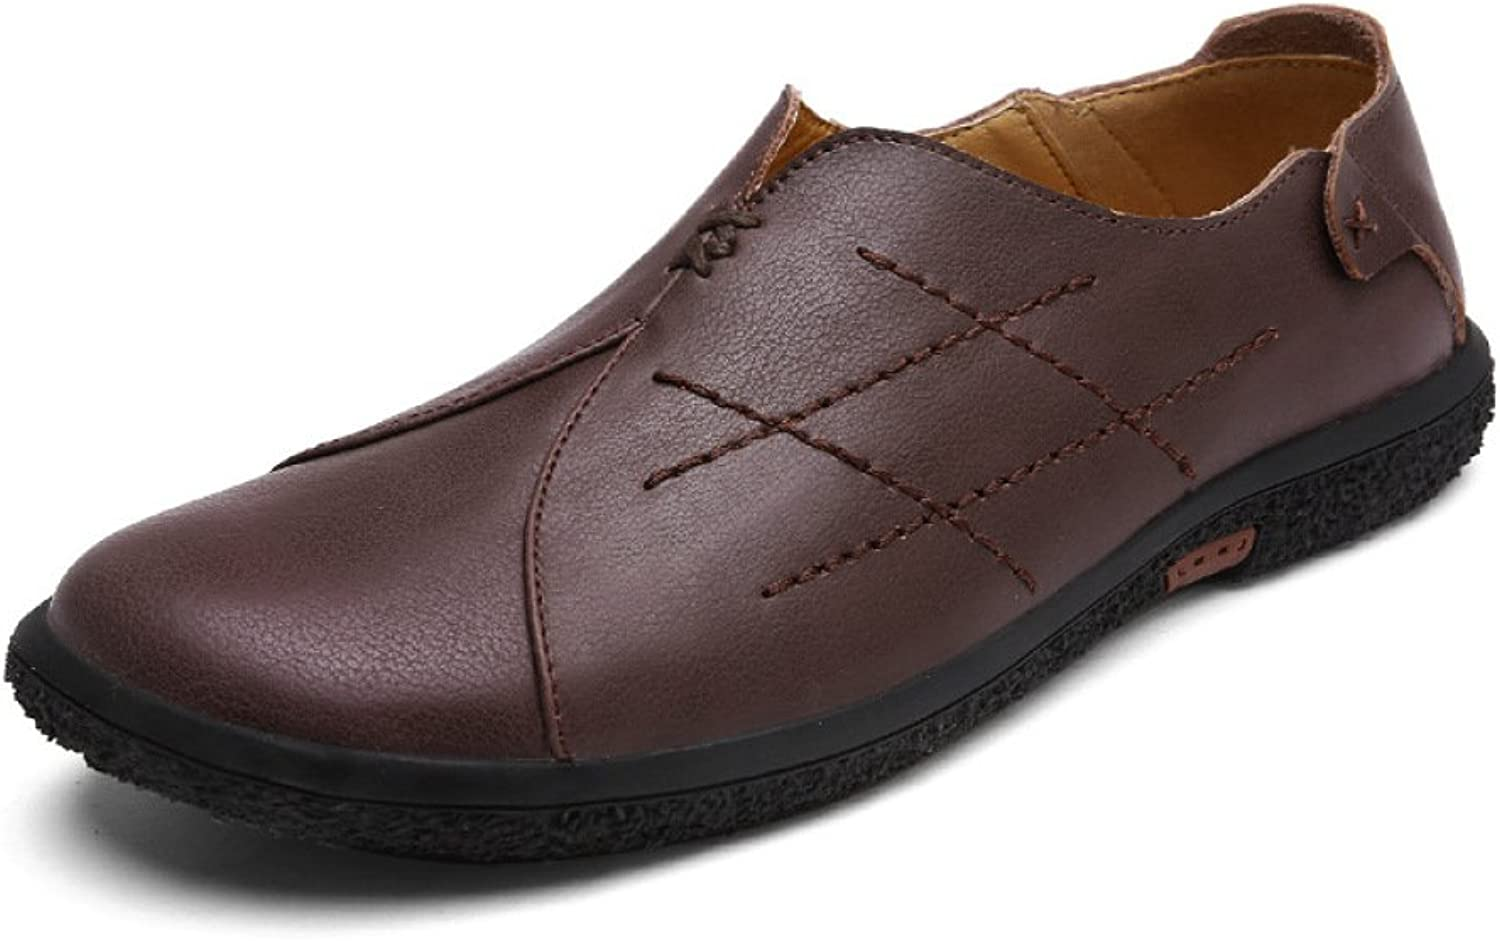 GTYMFH Autumn Genuine Leather Casual shoes Men's shoes Leather shoes